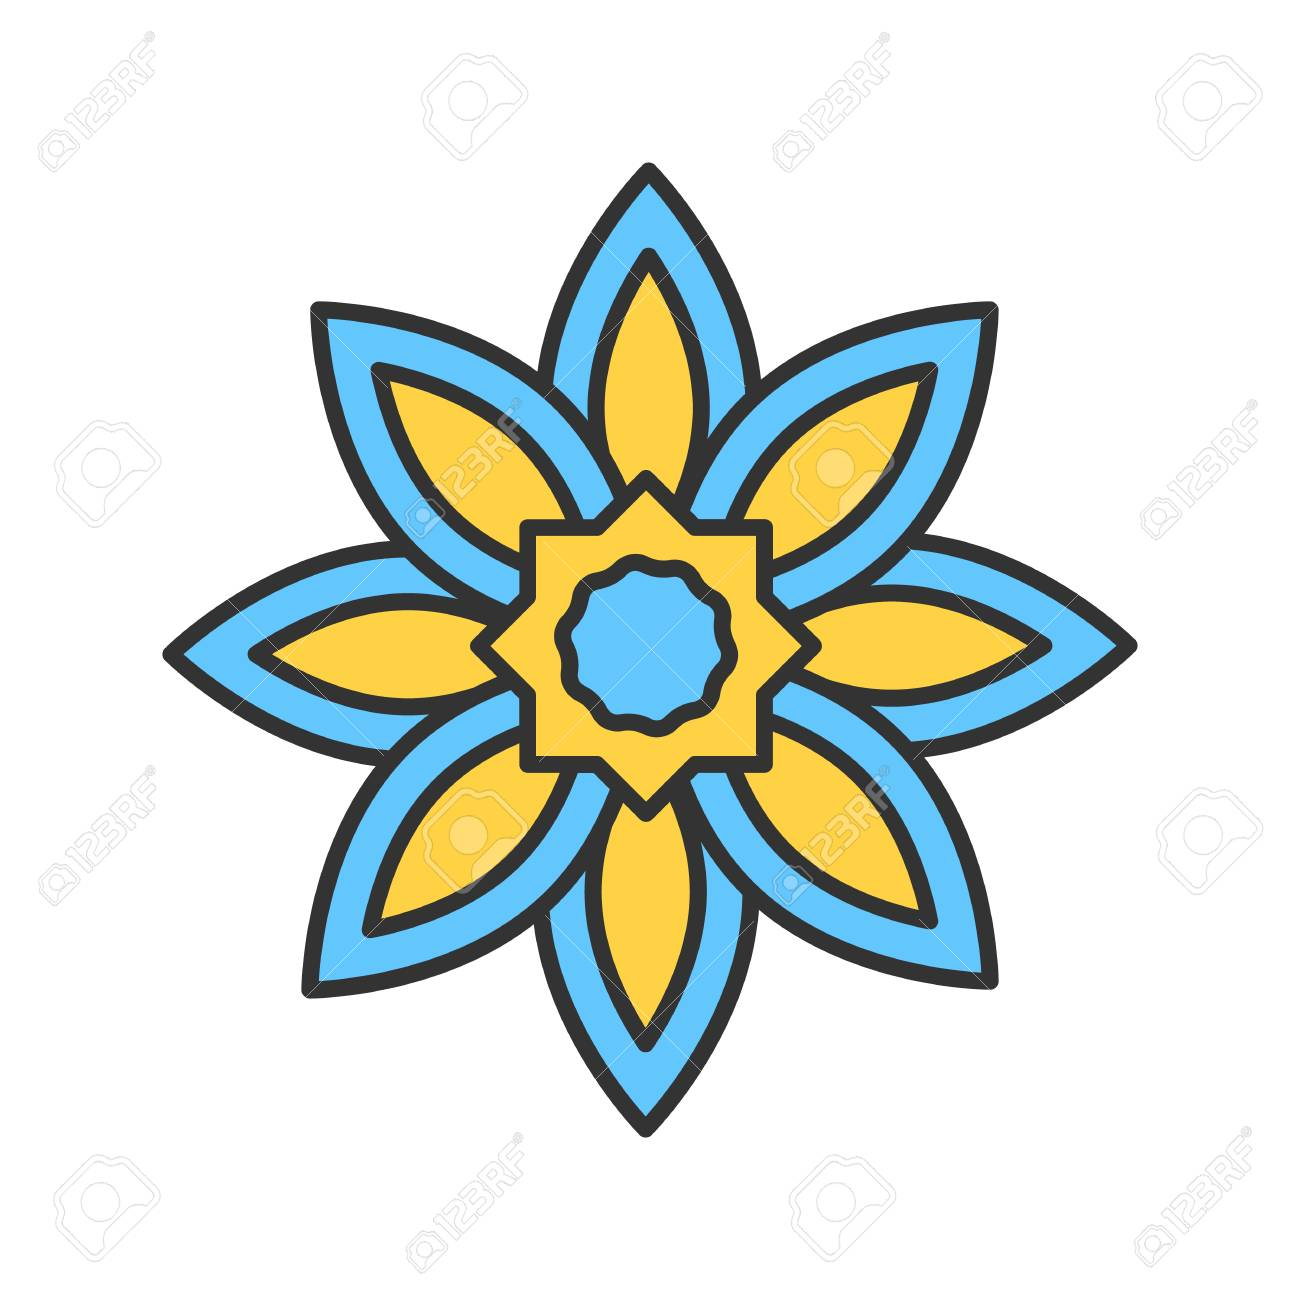 Islamic Star Color Icon Religious Symbolism Muslim Art Isolated